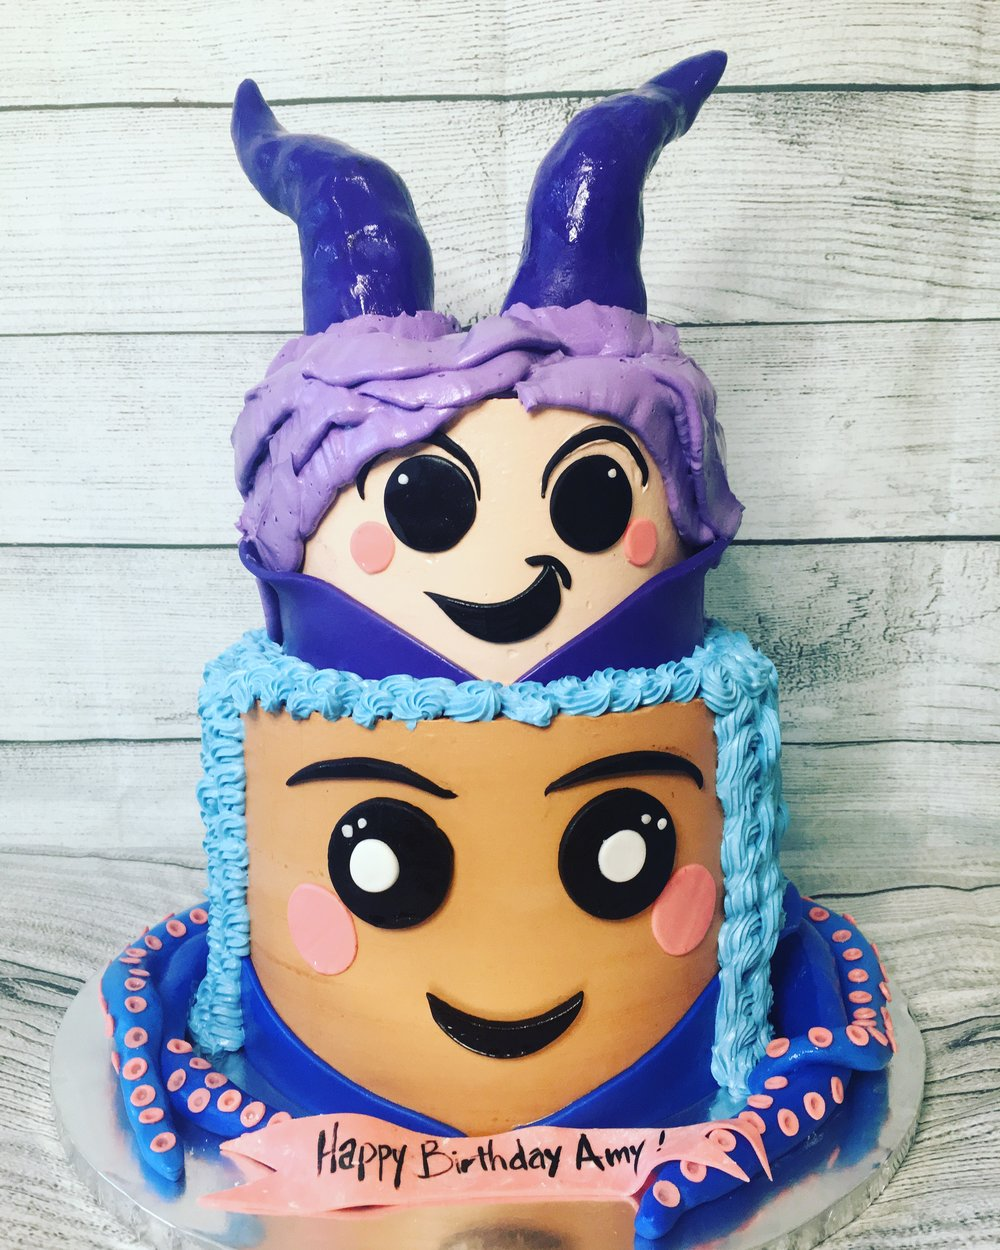 Disney Descendants 3 Cake - MWOKAJI CAKERY.JPG